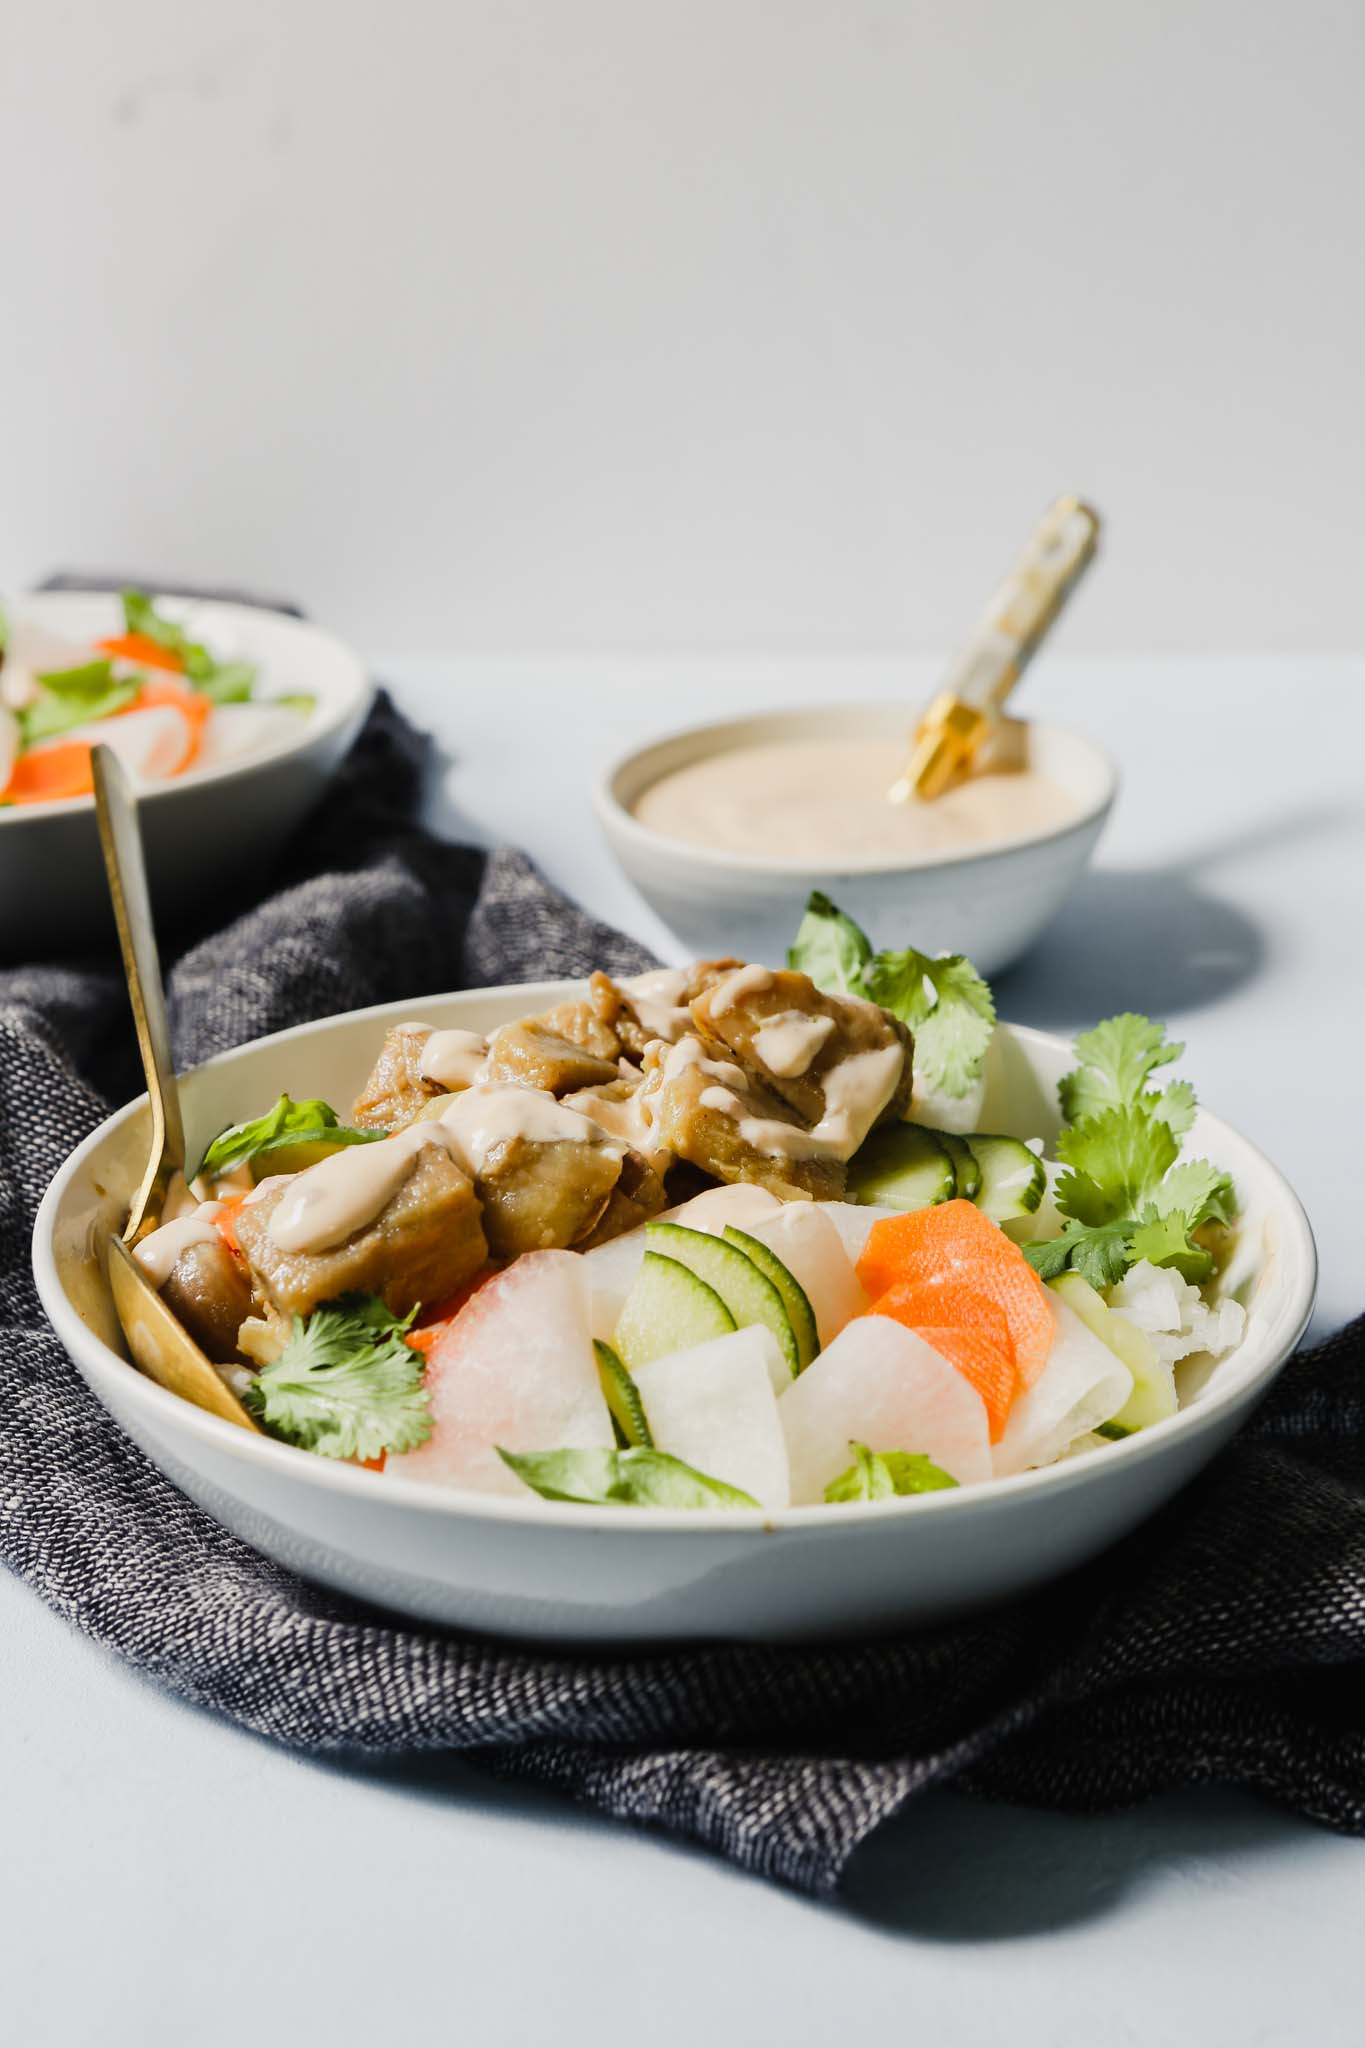 Photograph of banh mi bowls filled with rice, jackfruit, pickled vegetables, fresh herbs and a creamy sauce, set on a light blue table.